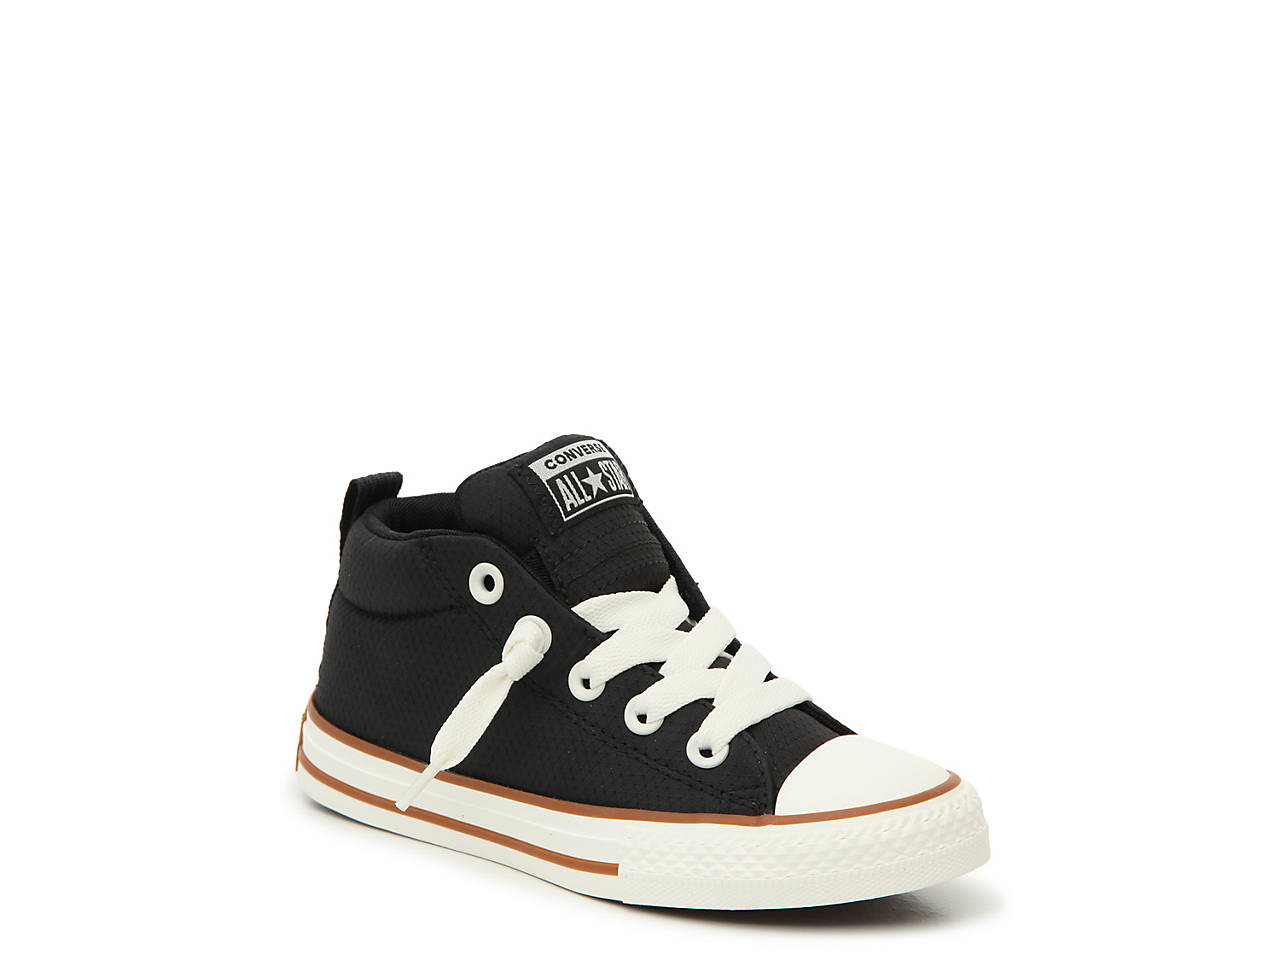 6f798aff1f57 Converse. Chuck Taylor All Star Street Pinstripe Toddler   Youth Slip-On  Sneaker